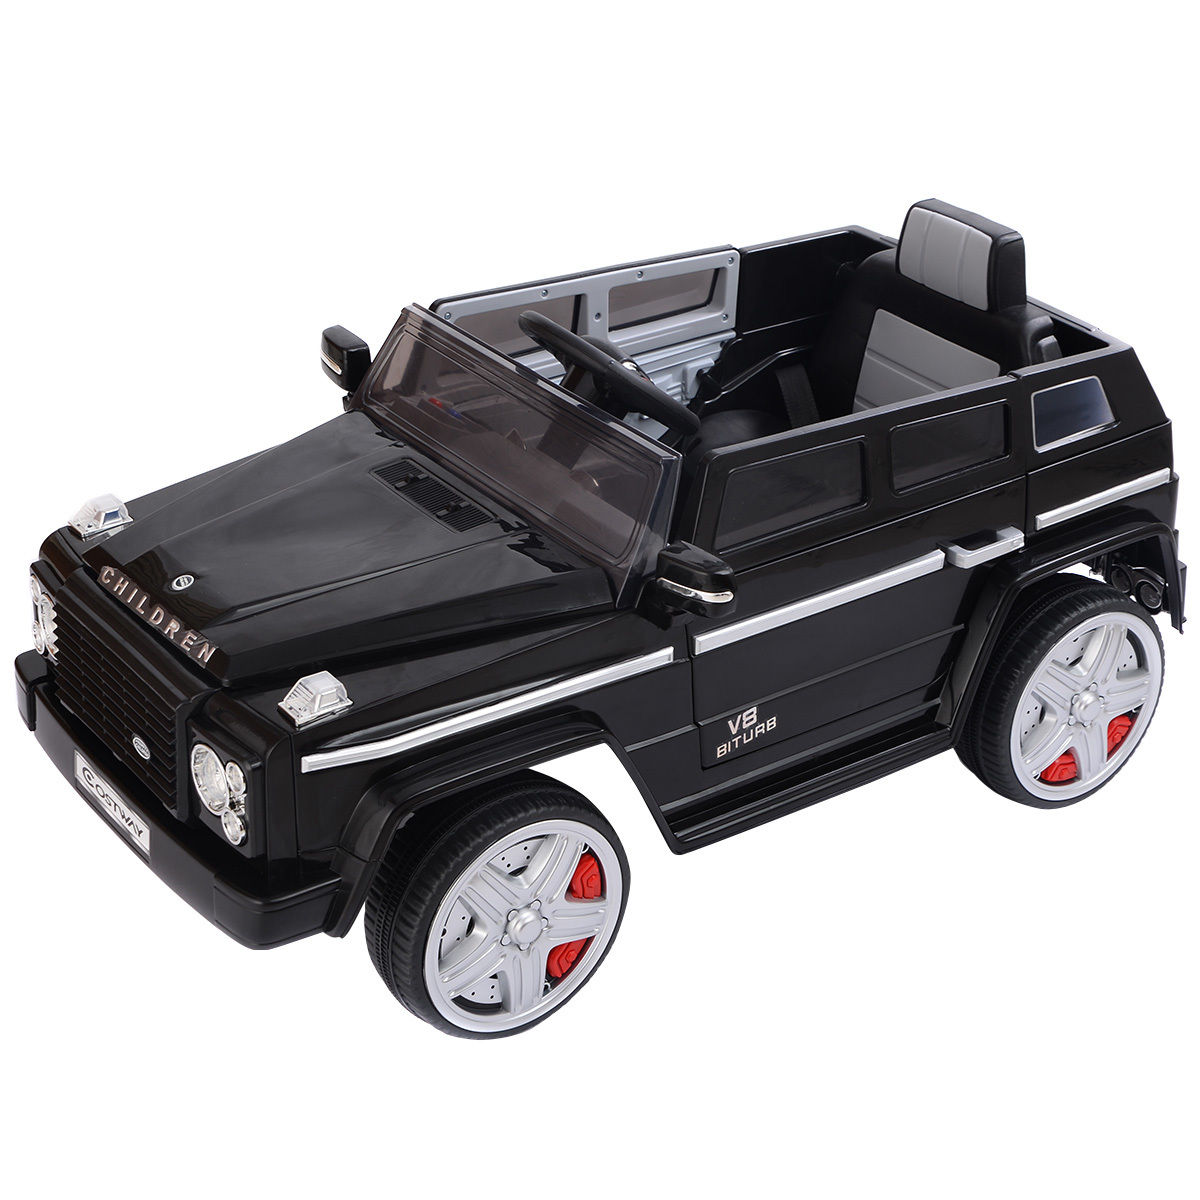 Costway 12V MP3 Kids Ride On Car Battery RC Remote Control w/ LED Lights Black